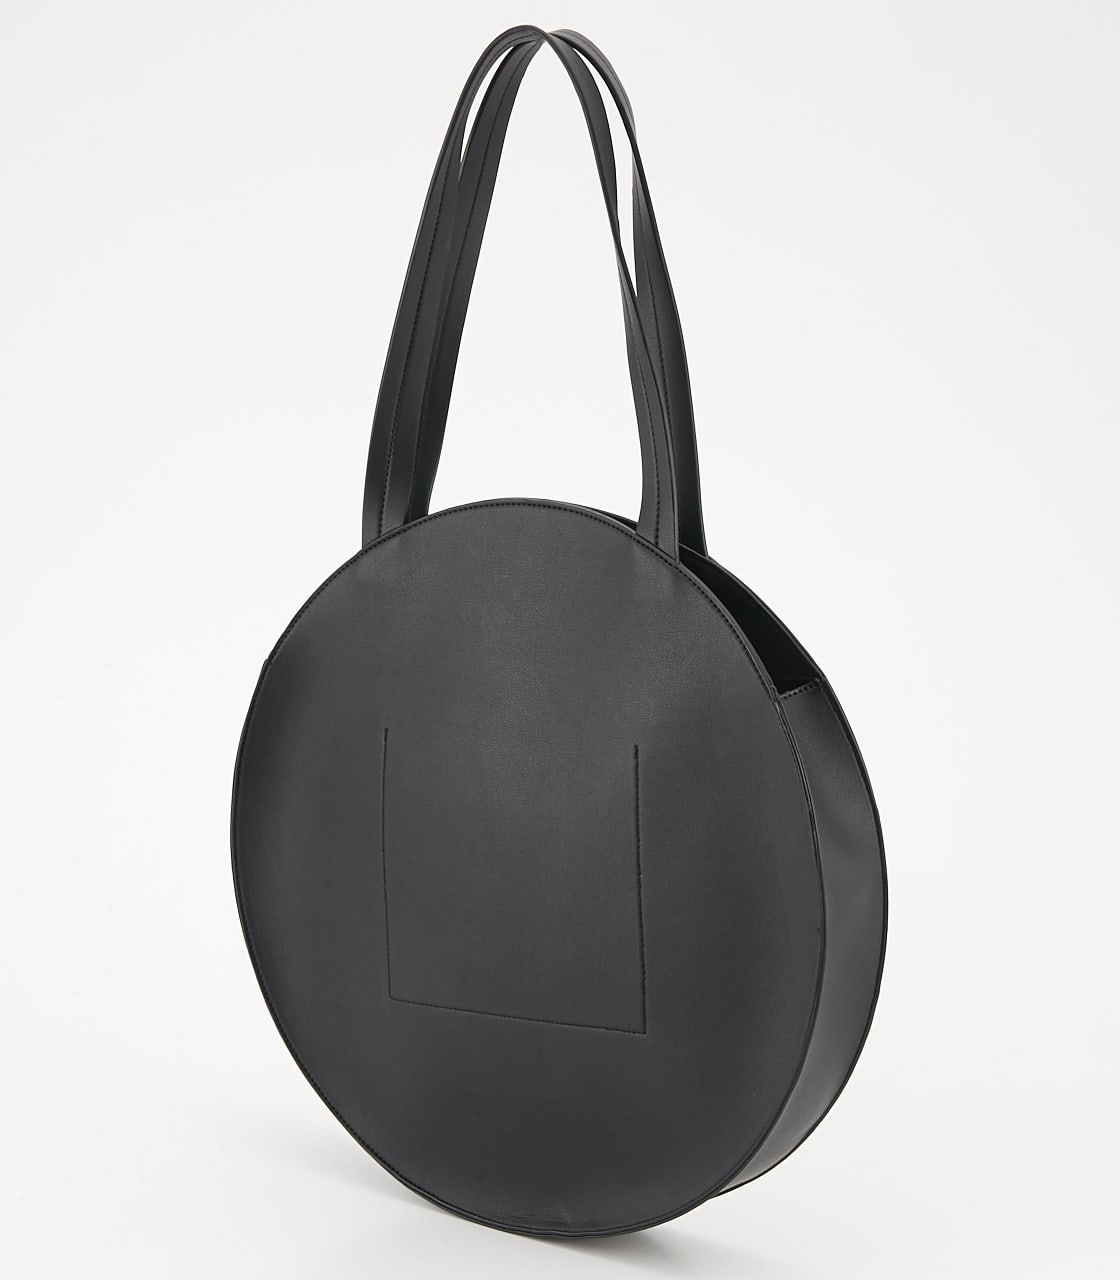 CIRCLE SHOULDER BAG M 詳細画像 BLK 2